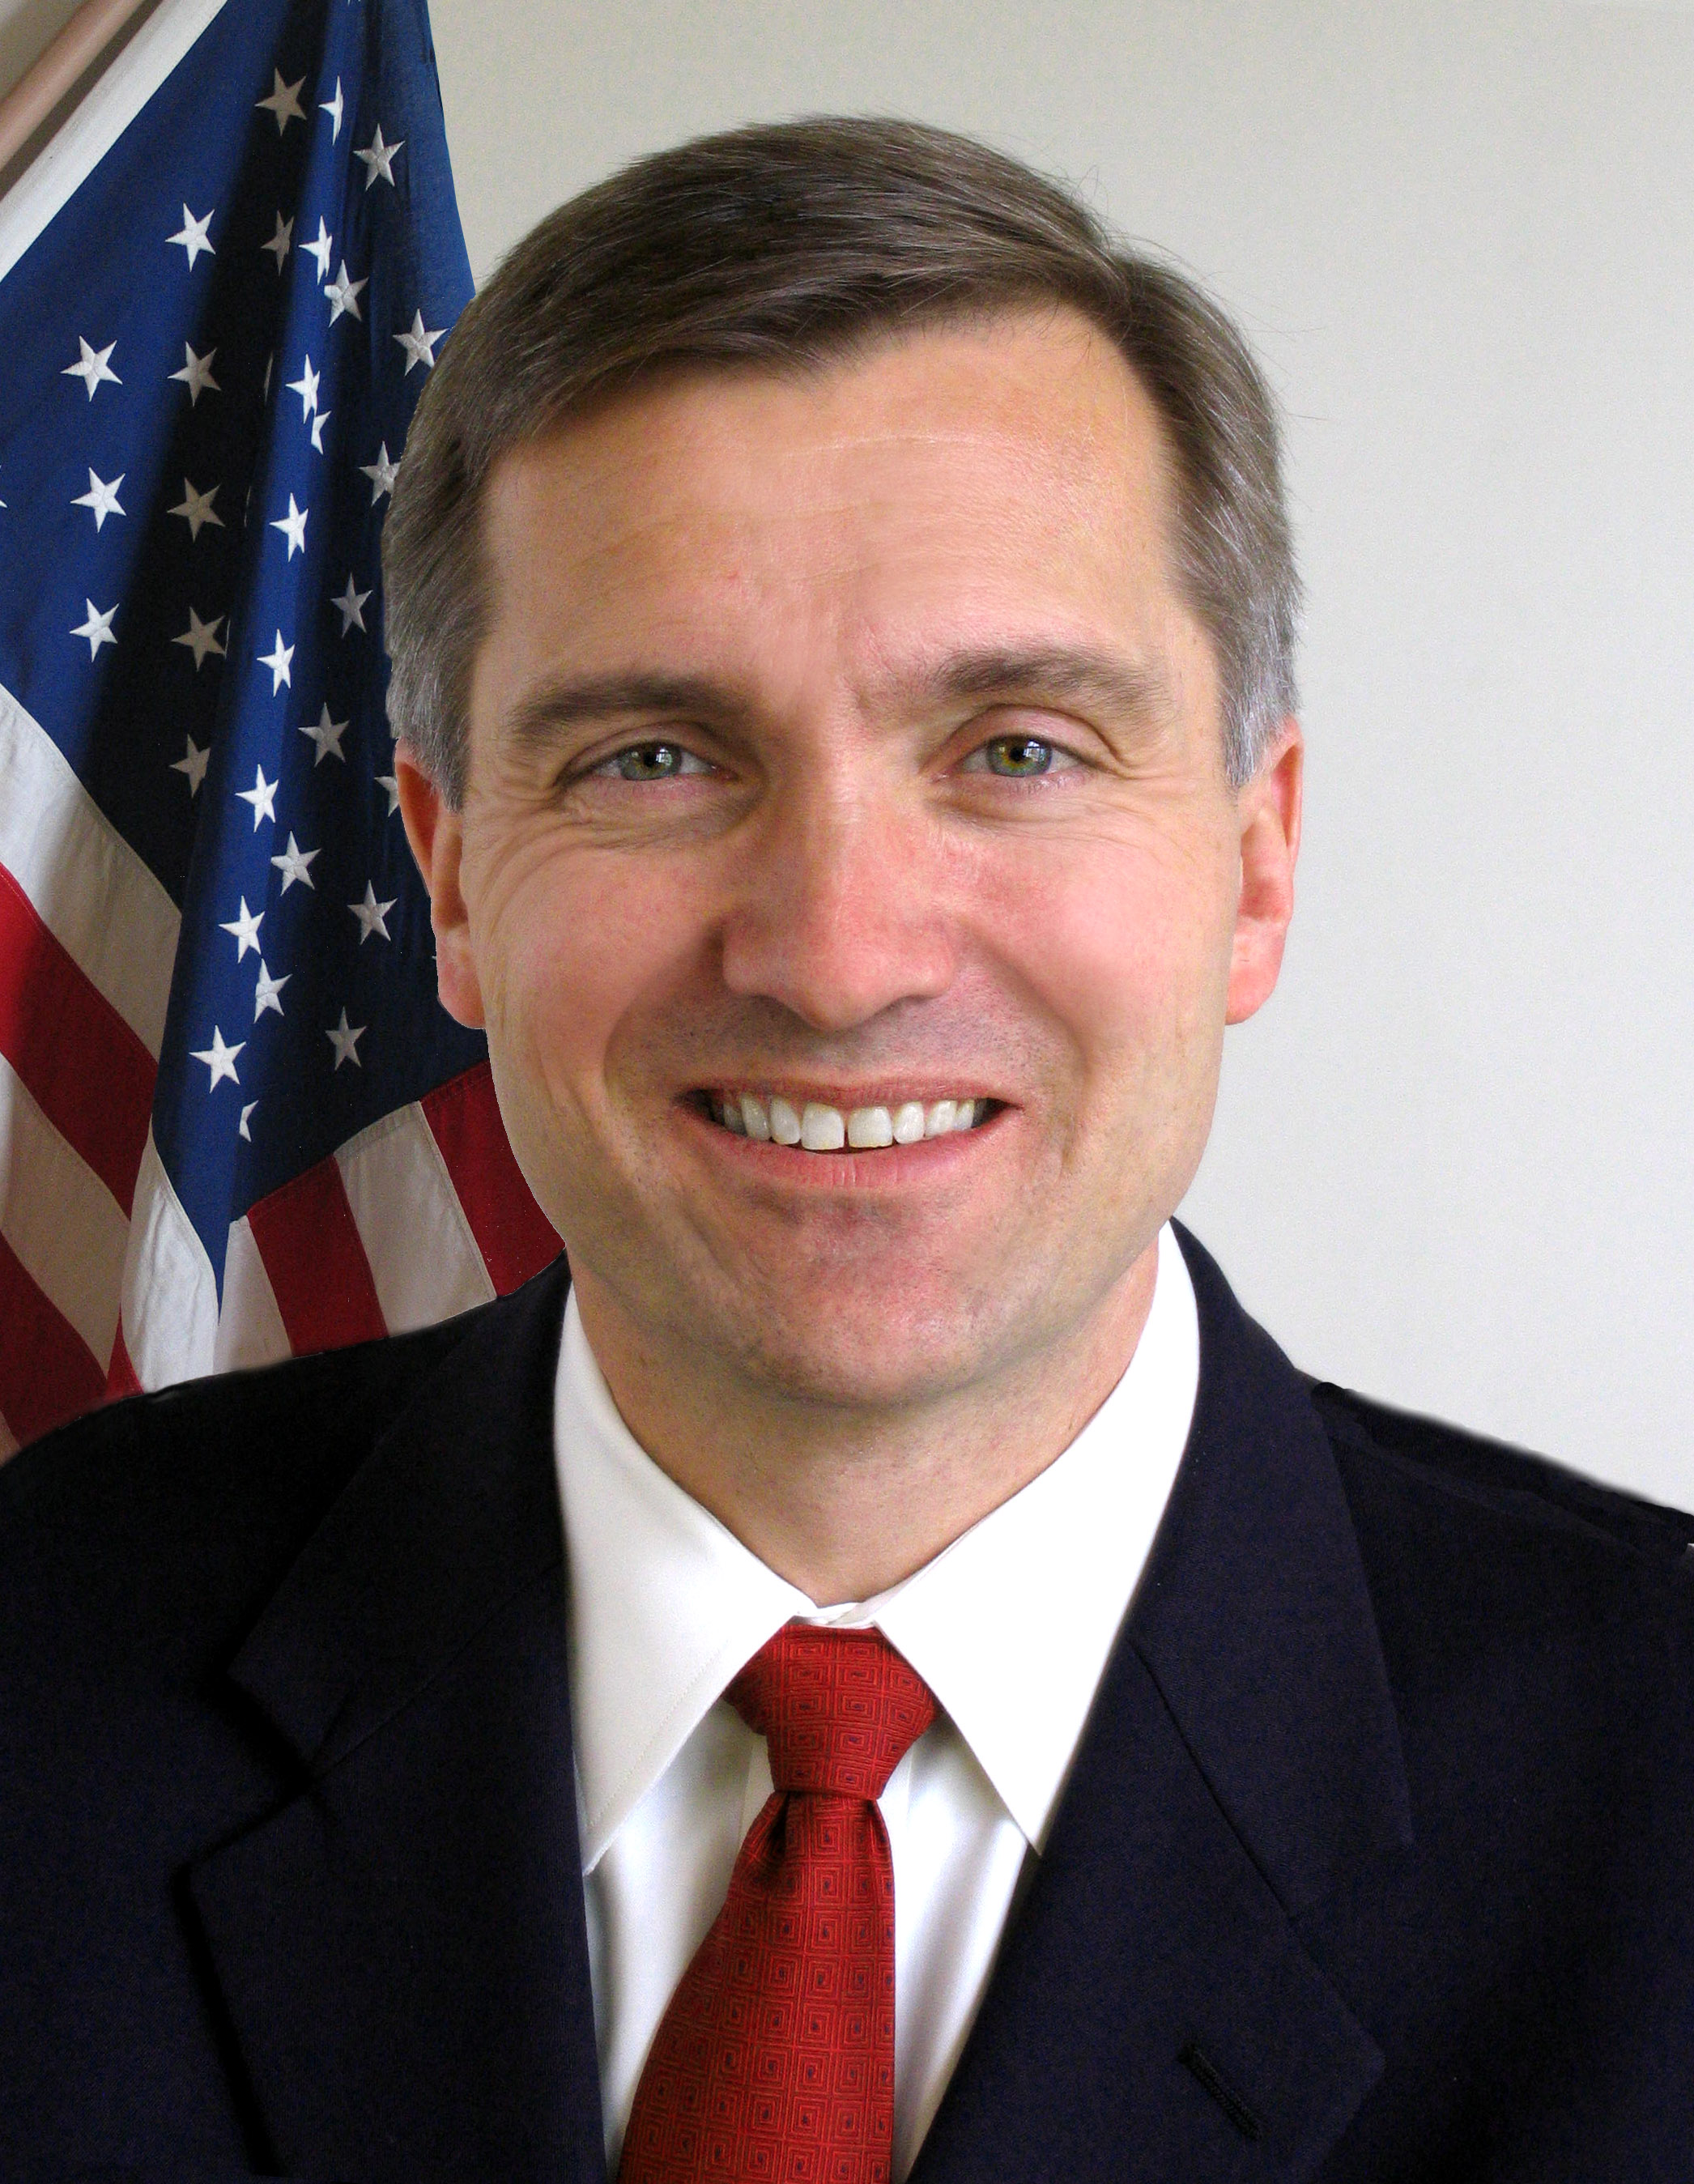 Utah Rep. Jim Matheson